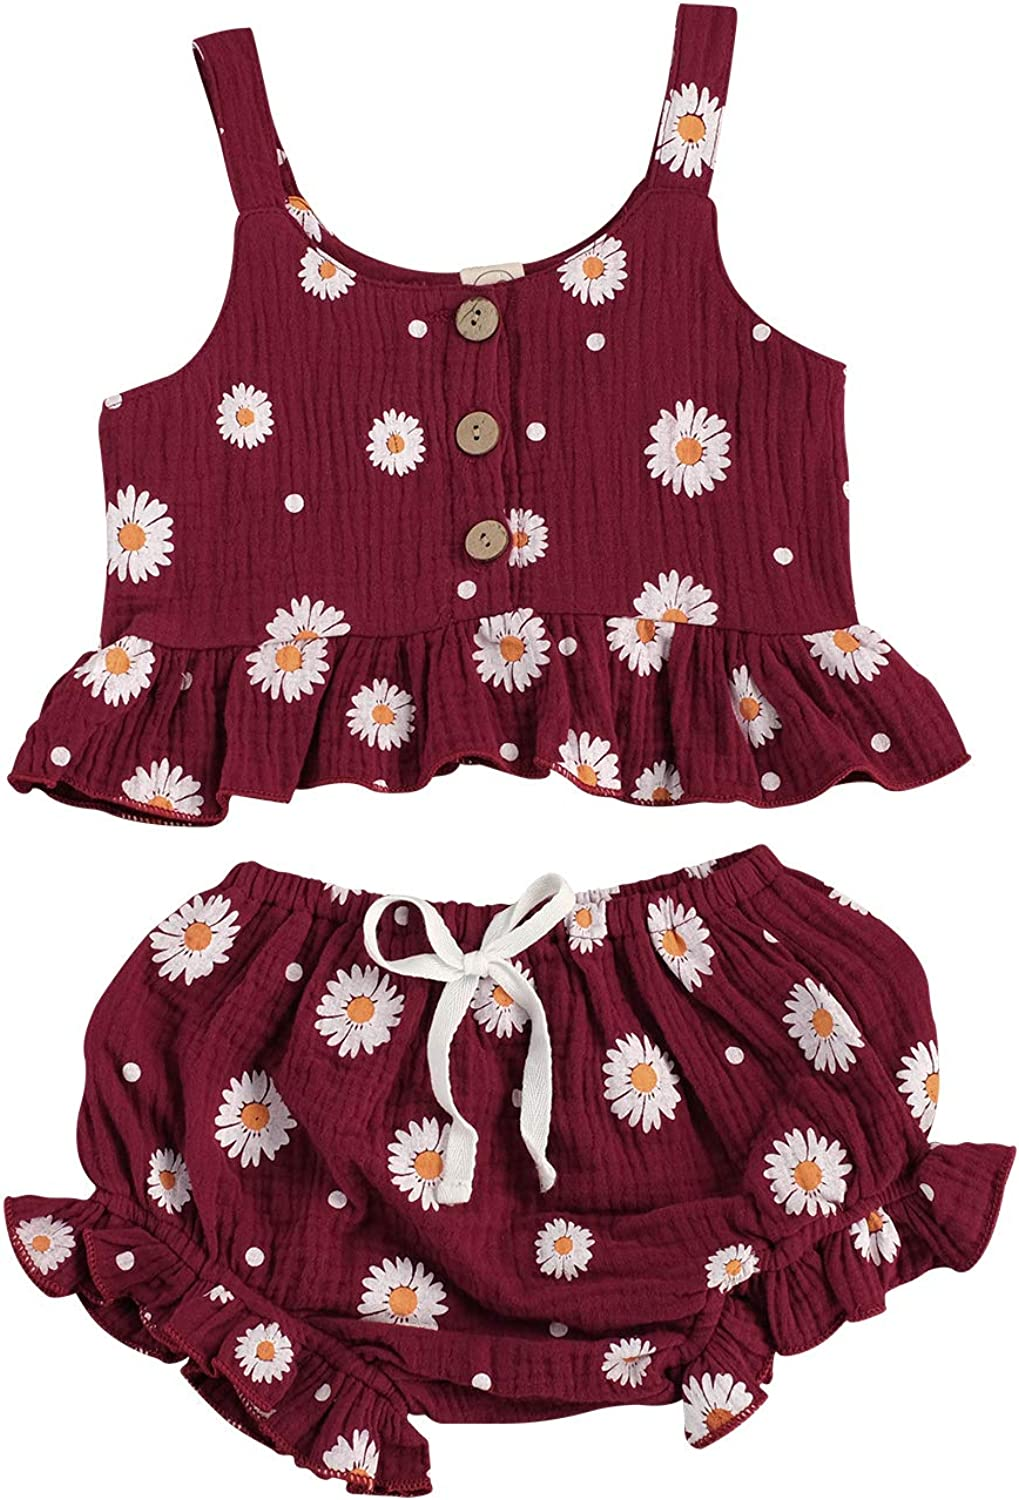 Toddler Baby Girl Summer Clothing Floral Strap Ruffle Top and Shorts Set 2 PCS Outfits